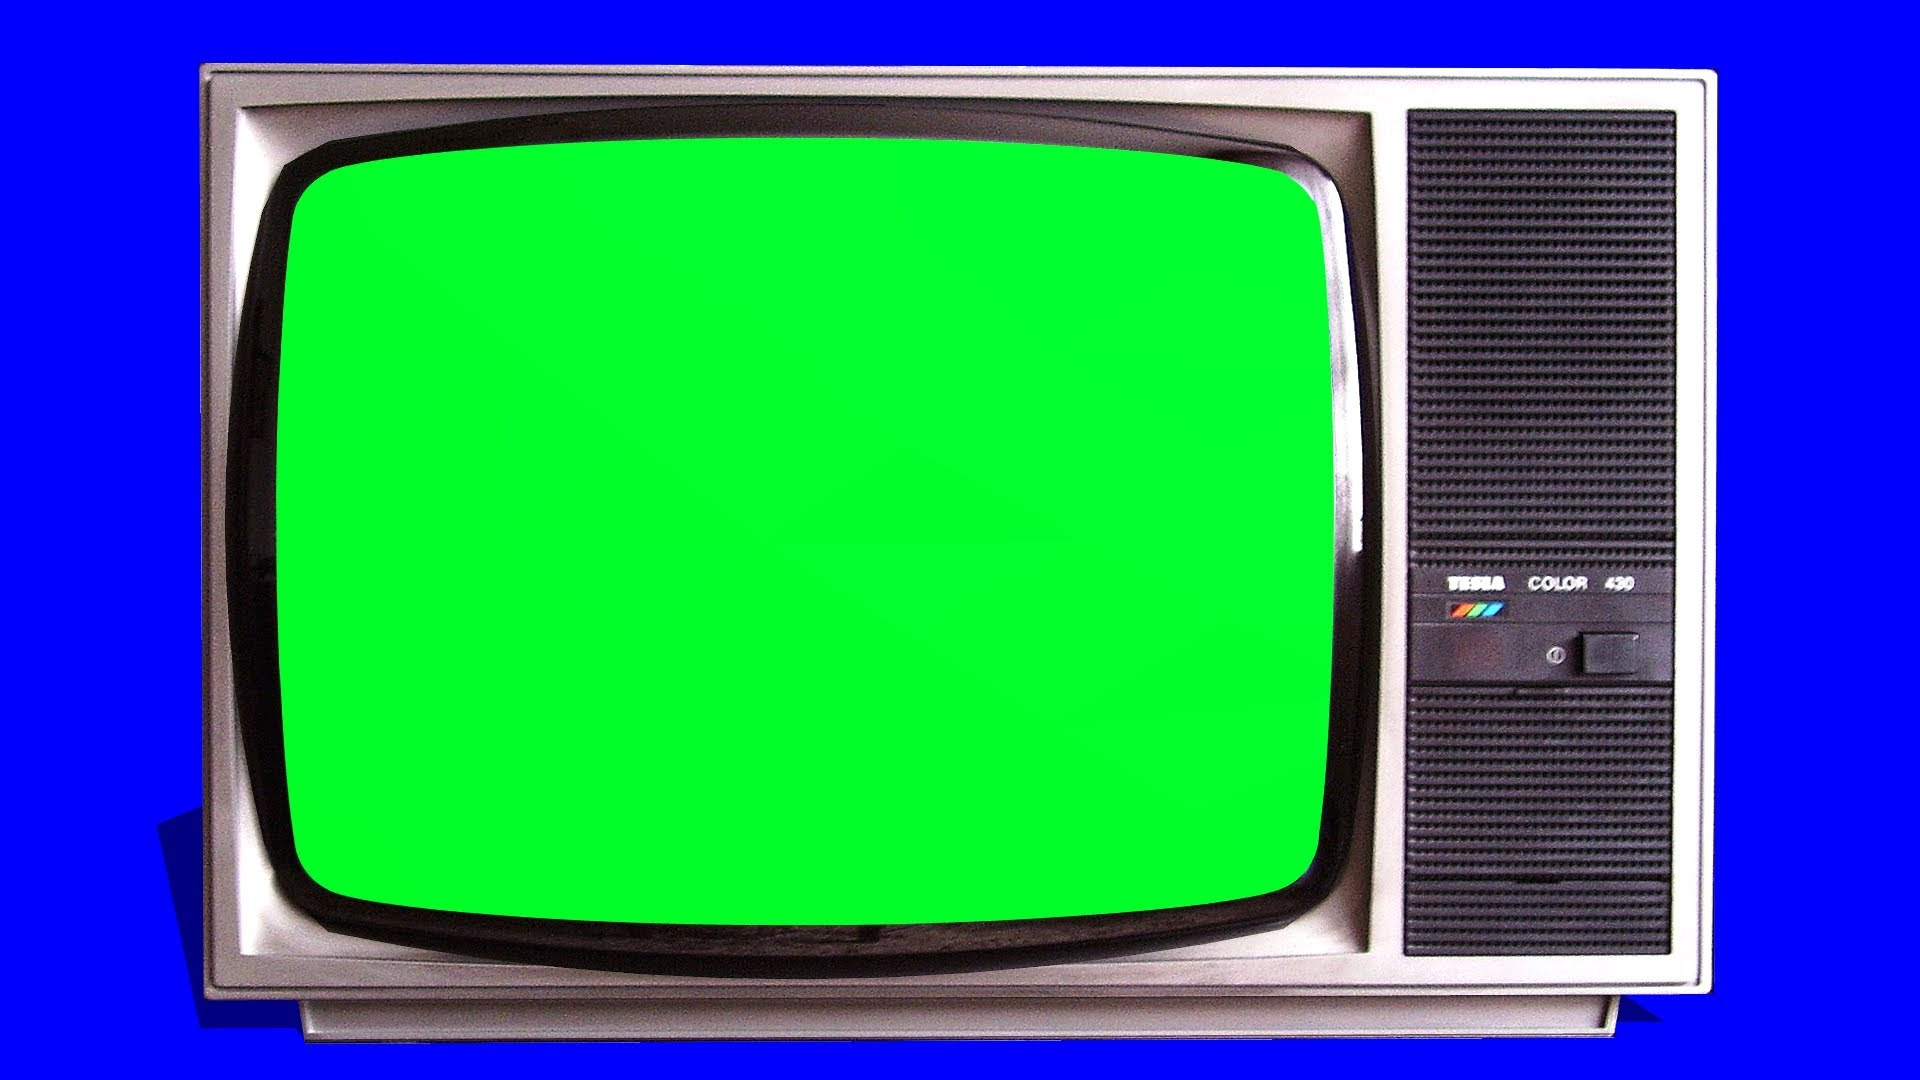 old TV vintage Televison green screen   tracking shot and stills 1920x1080